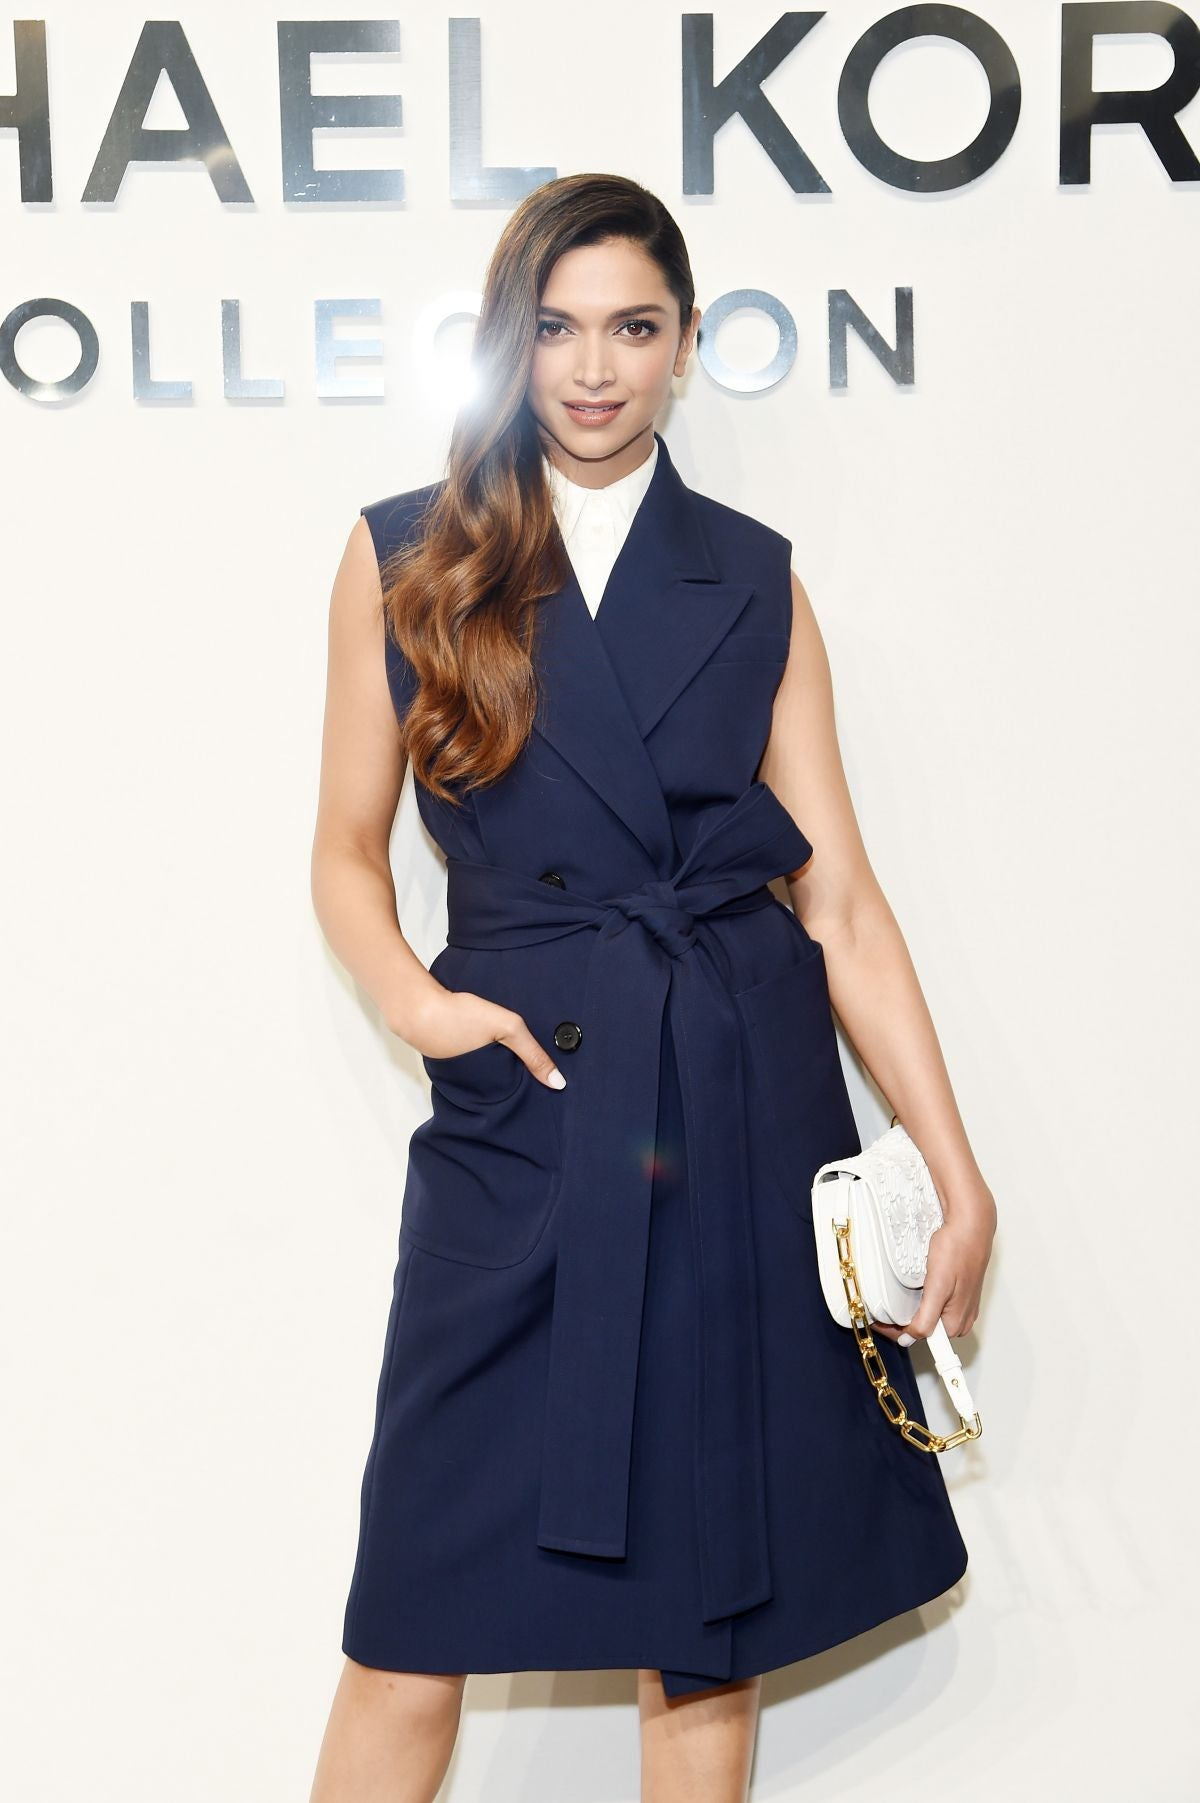 Deepika Padukone in Michael Kors Spring 2017 collection navy blue trench dress at new york fashion week